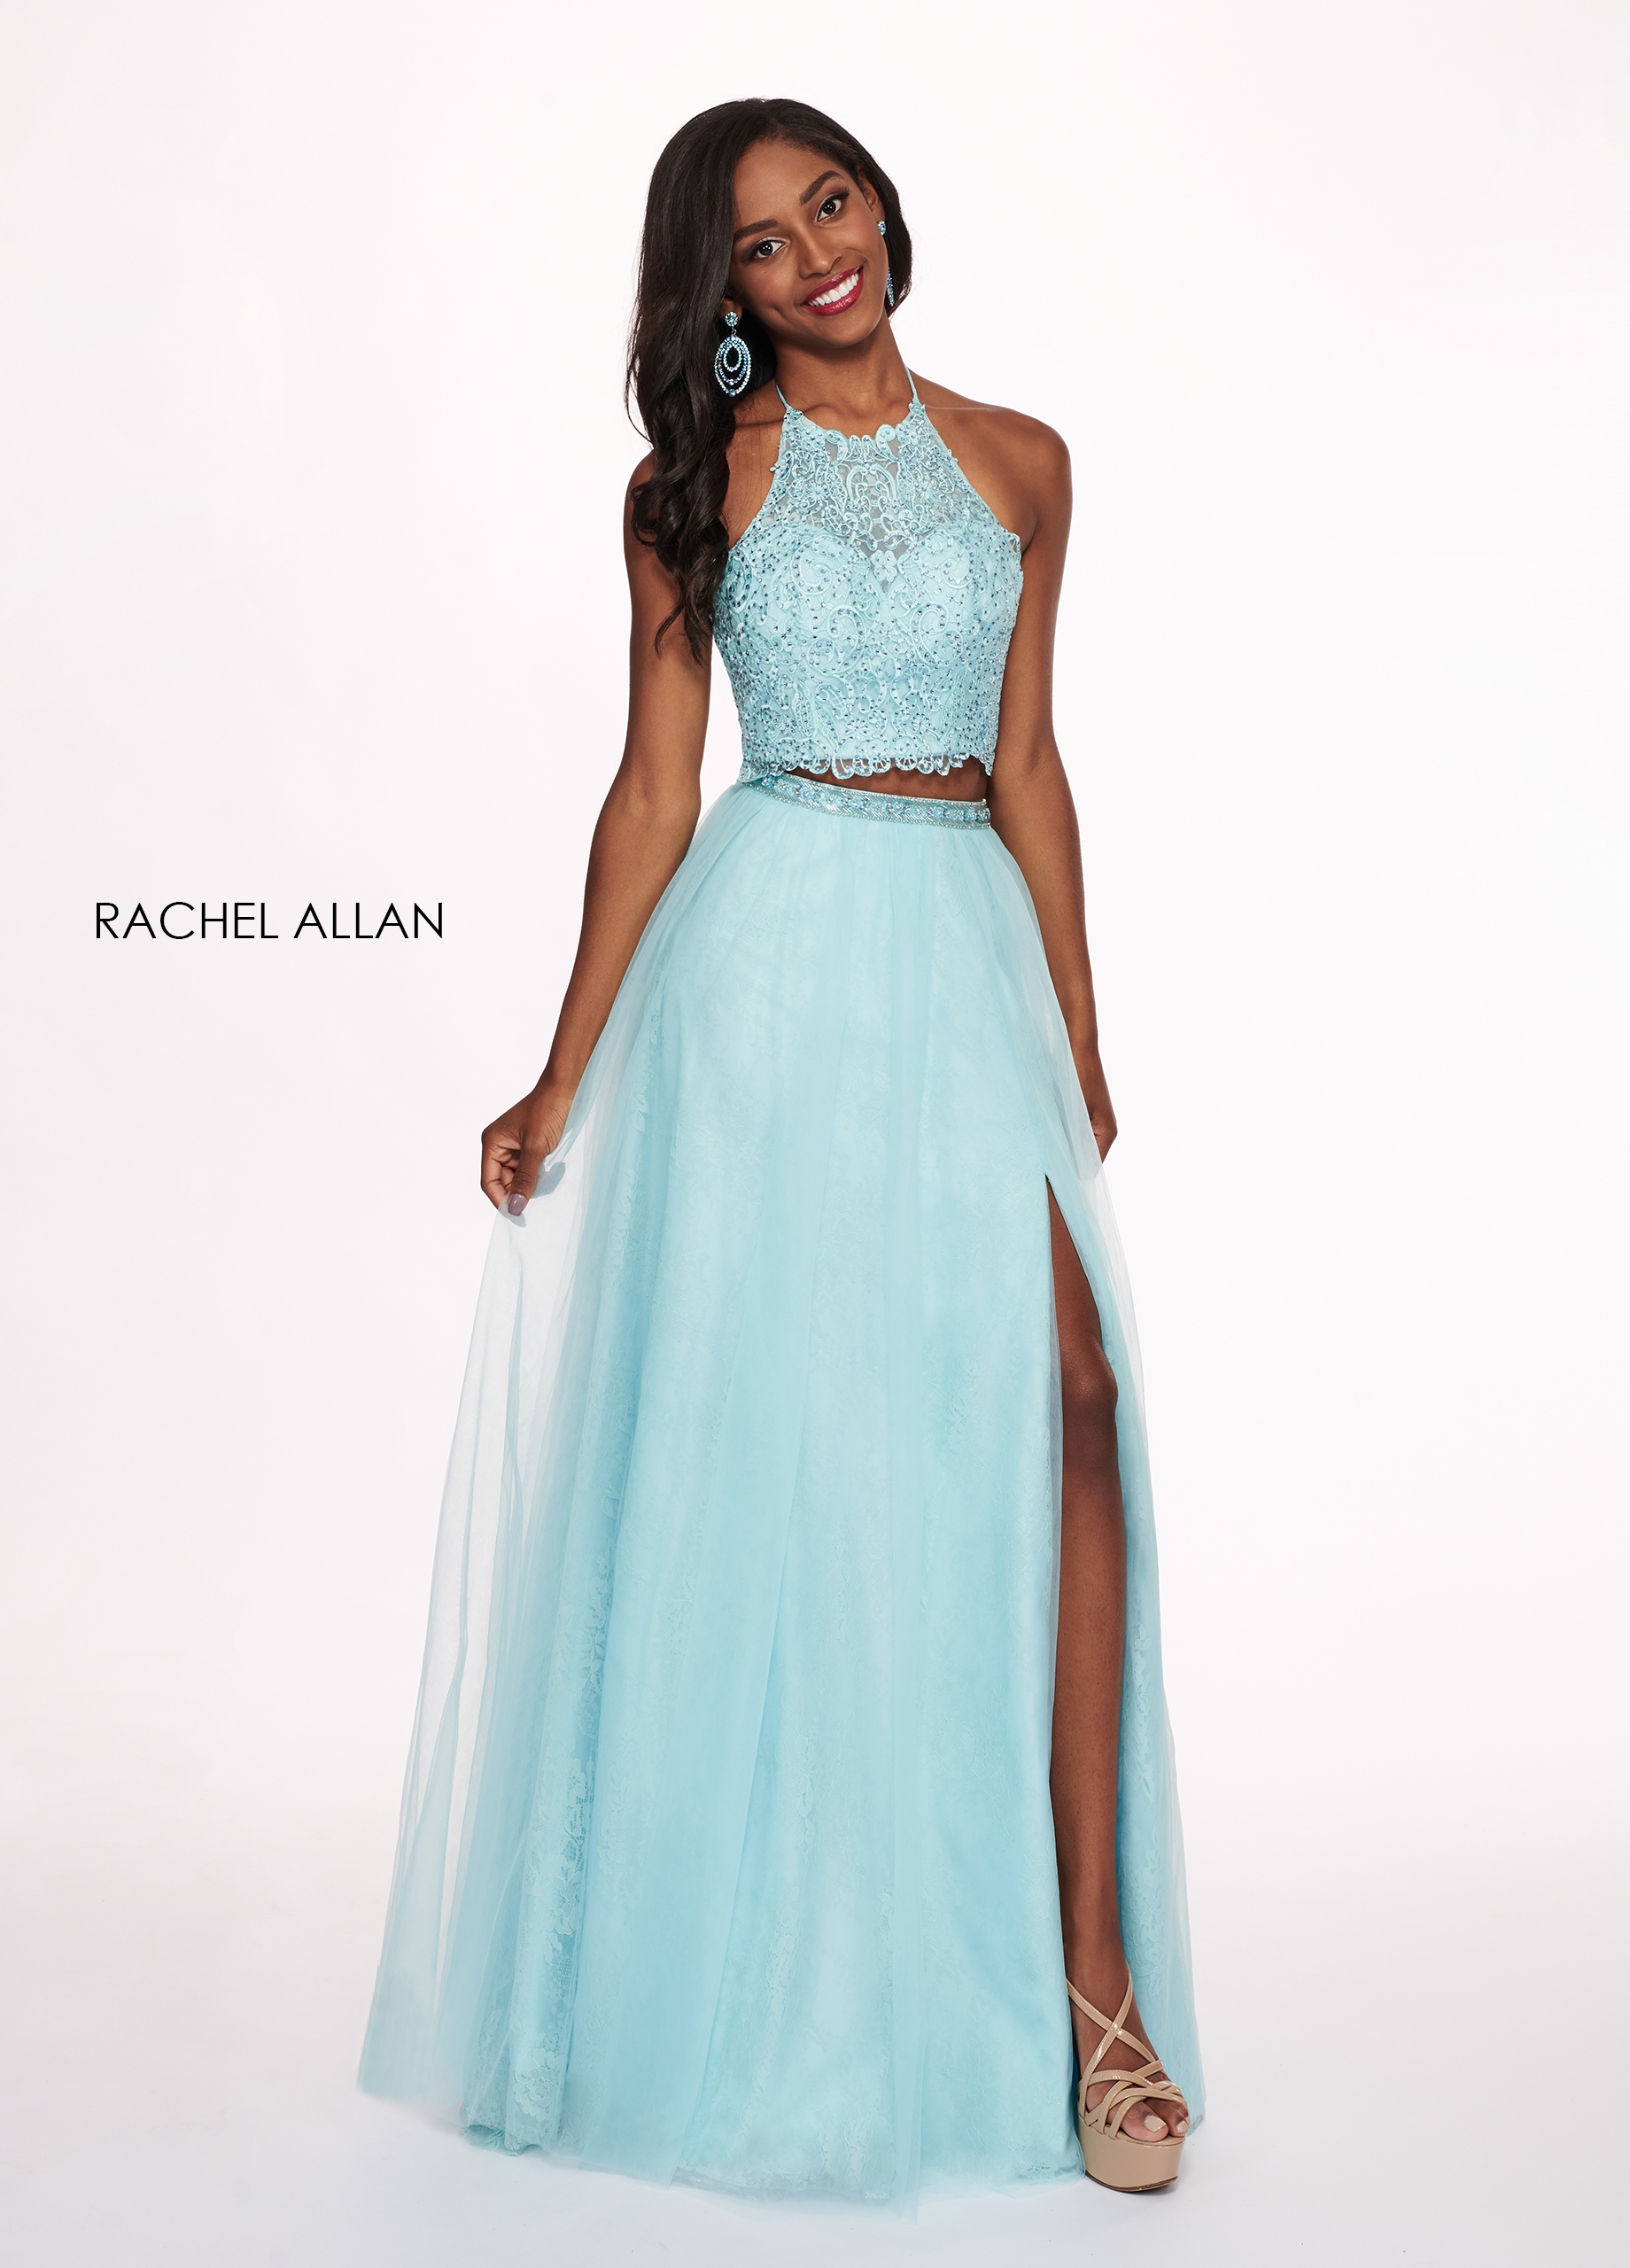 Halter Two-Piece Prom Dresses in Mint Color